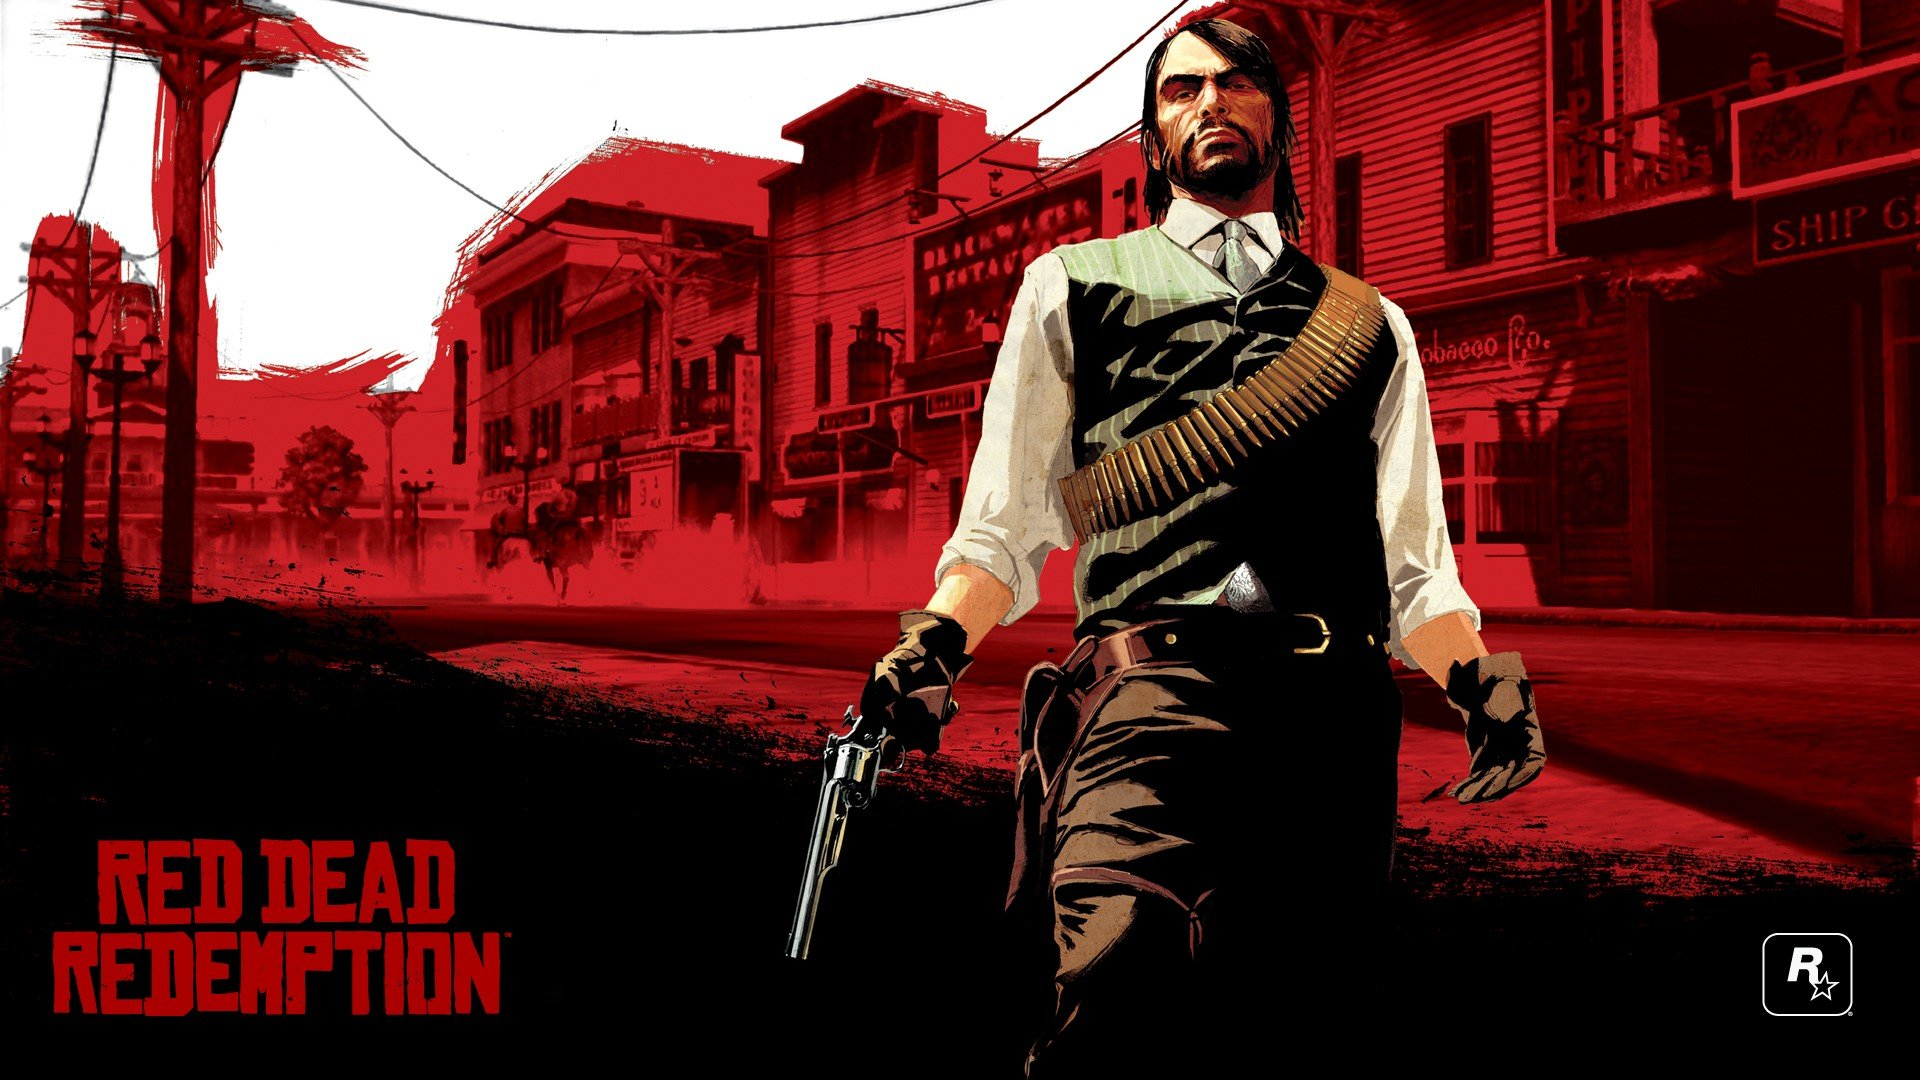 Red Dead Redemption Hd Wallpapers Desktop And Mobile Images Photos